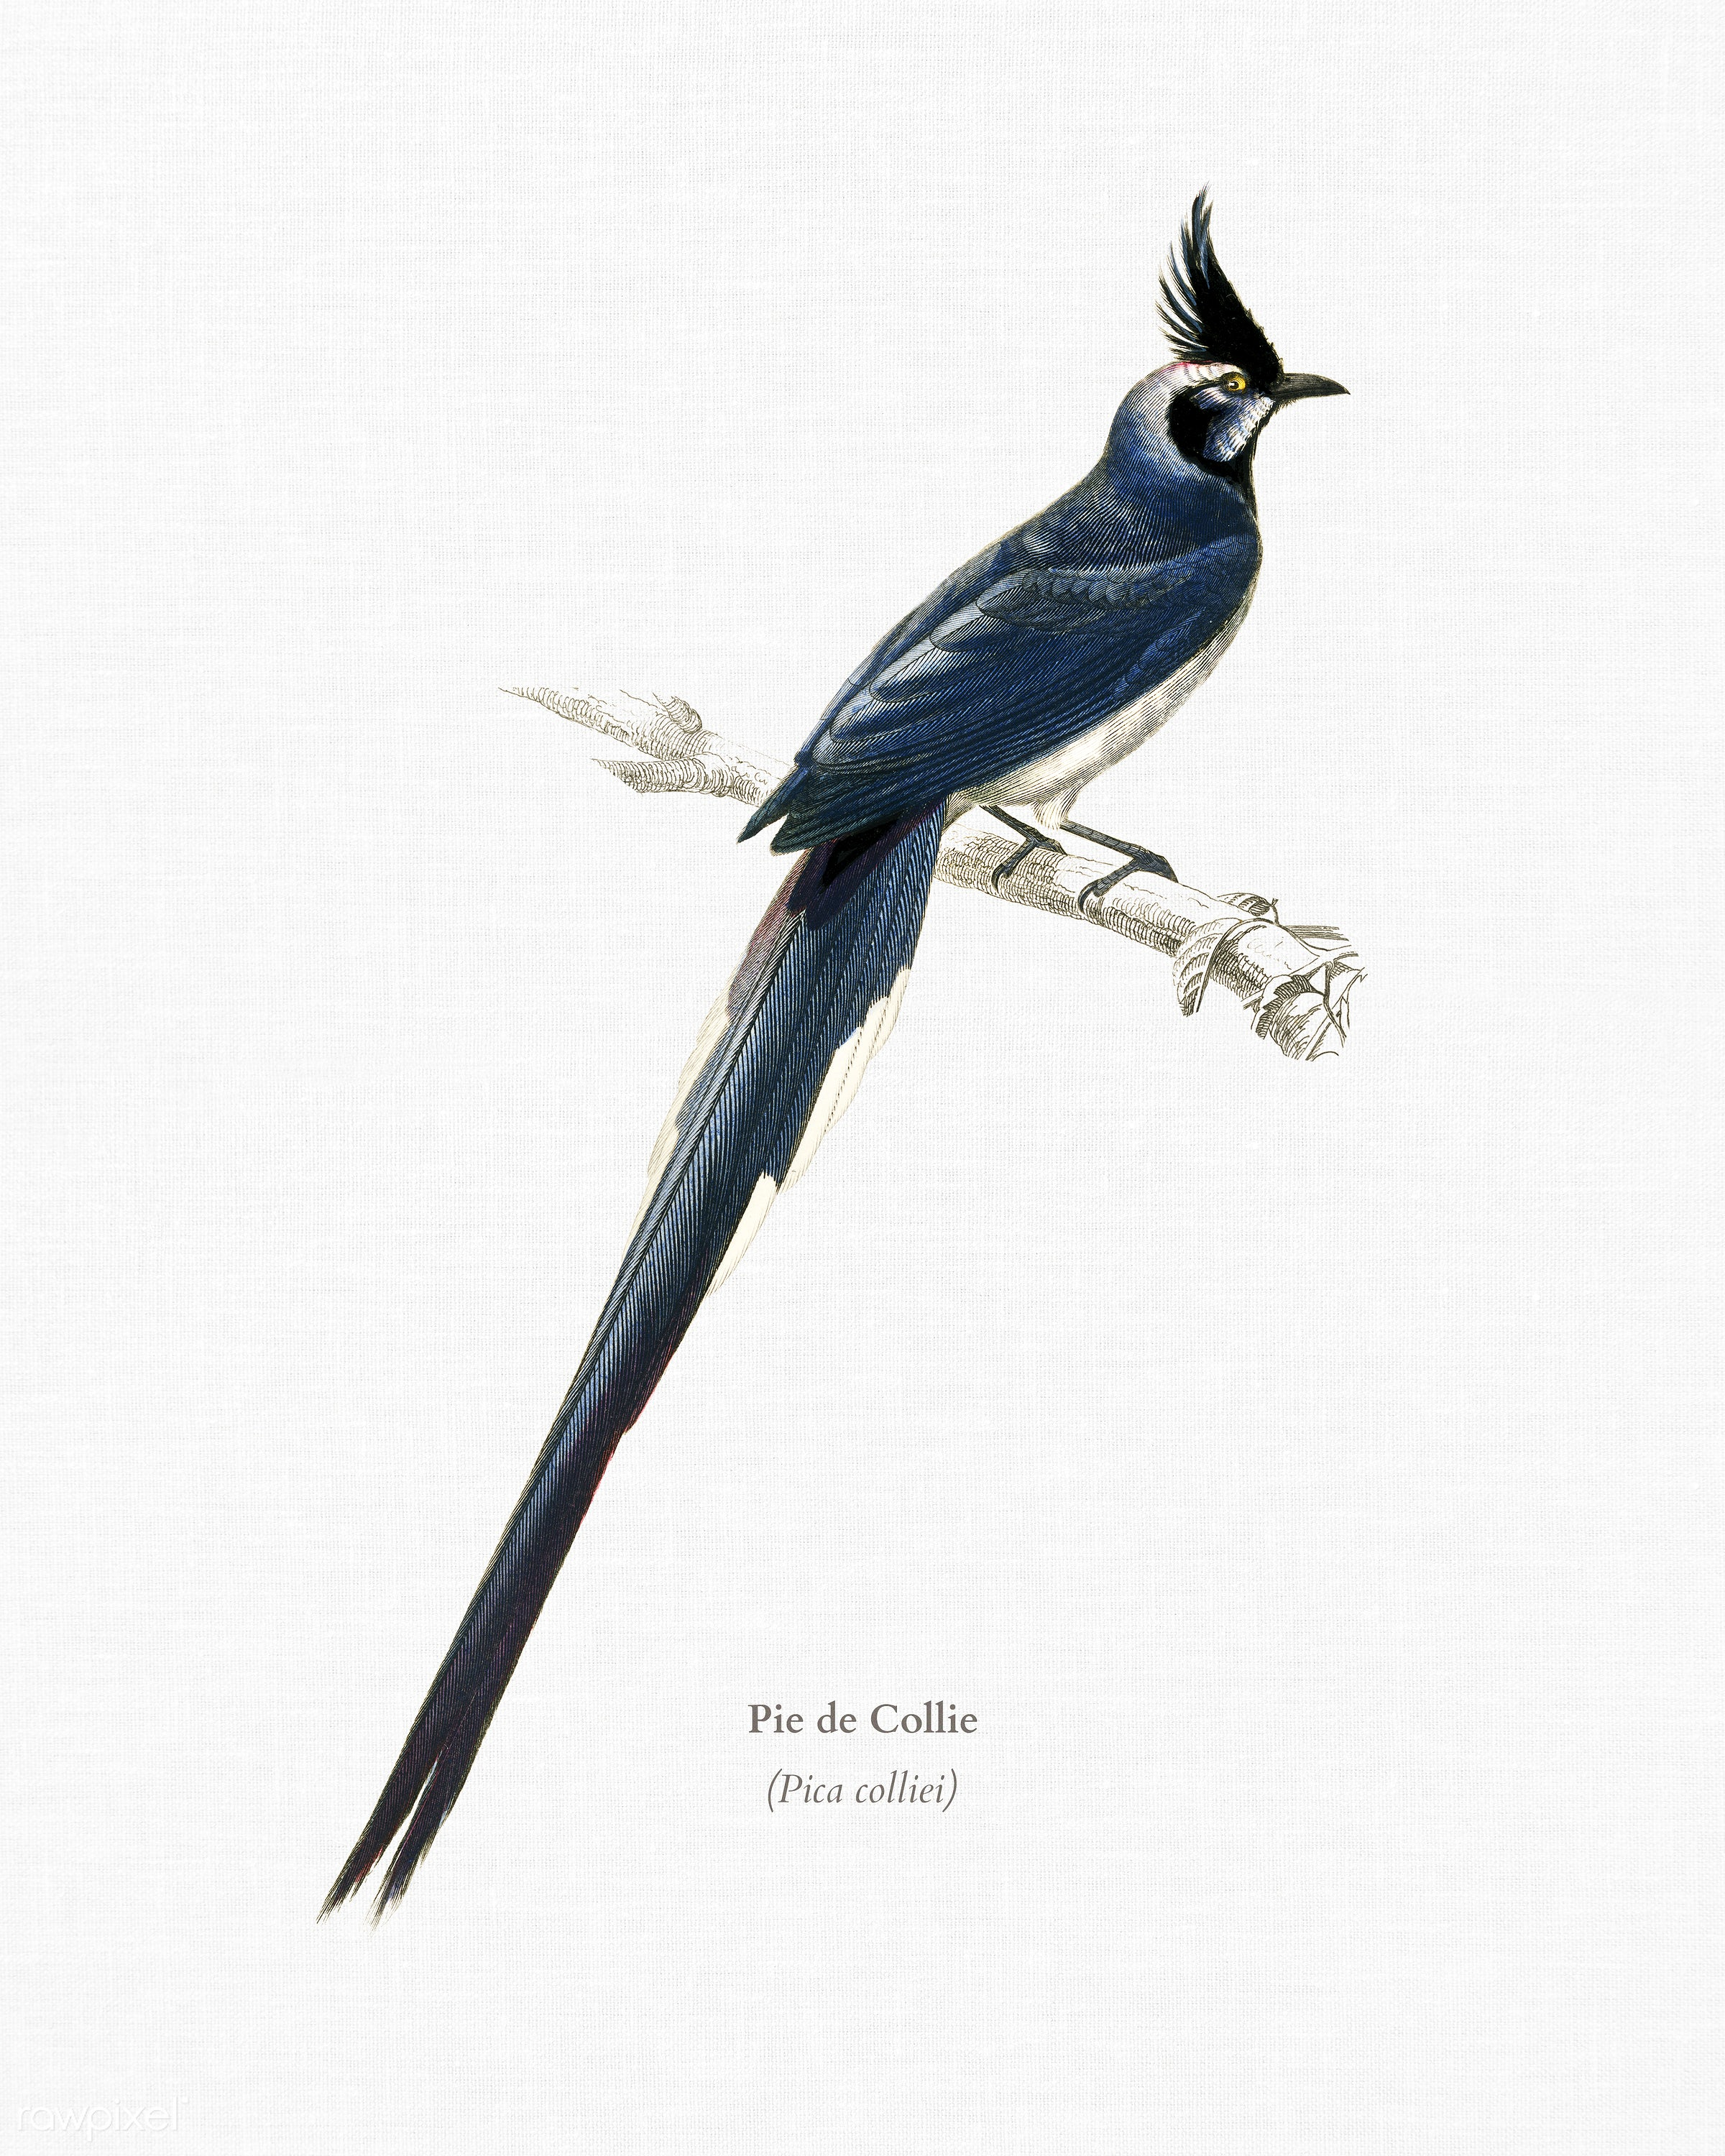 Black-throated magpie-jay (Pica colliei) illustrated by Charles Dessalines D' Orbigny (1806-1876). Digitally enhanced...